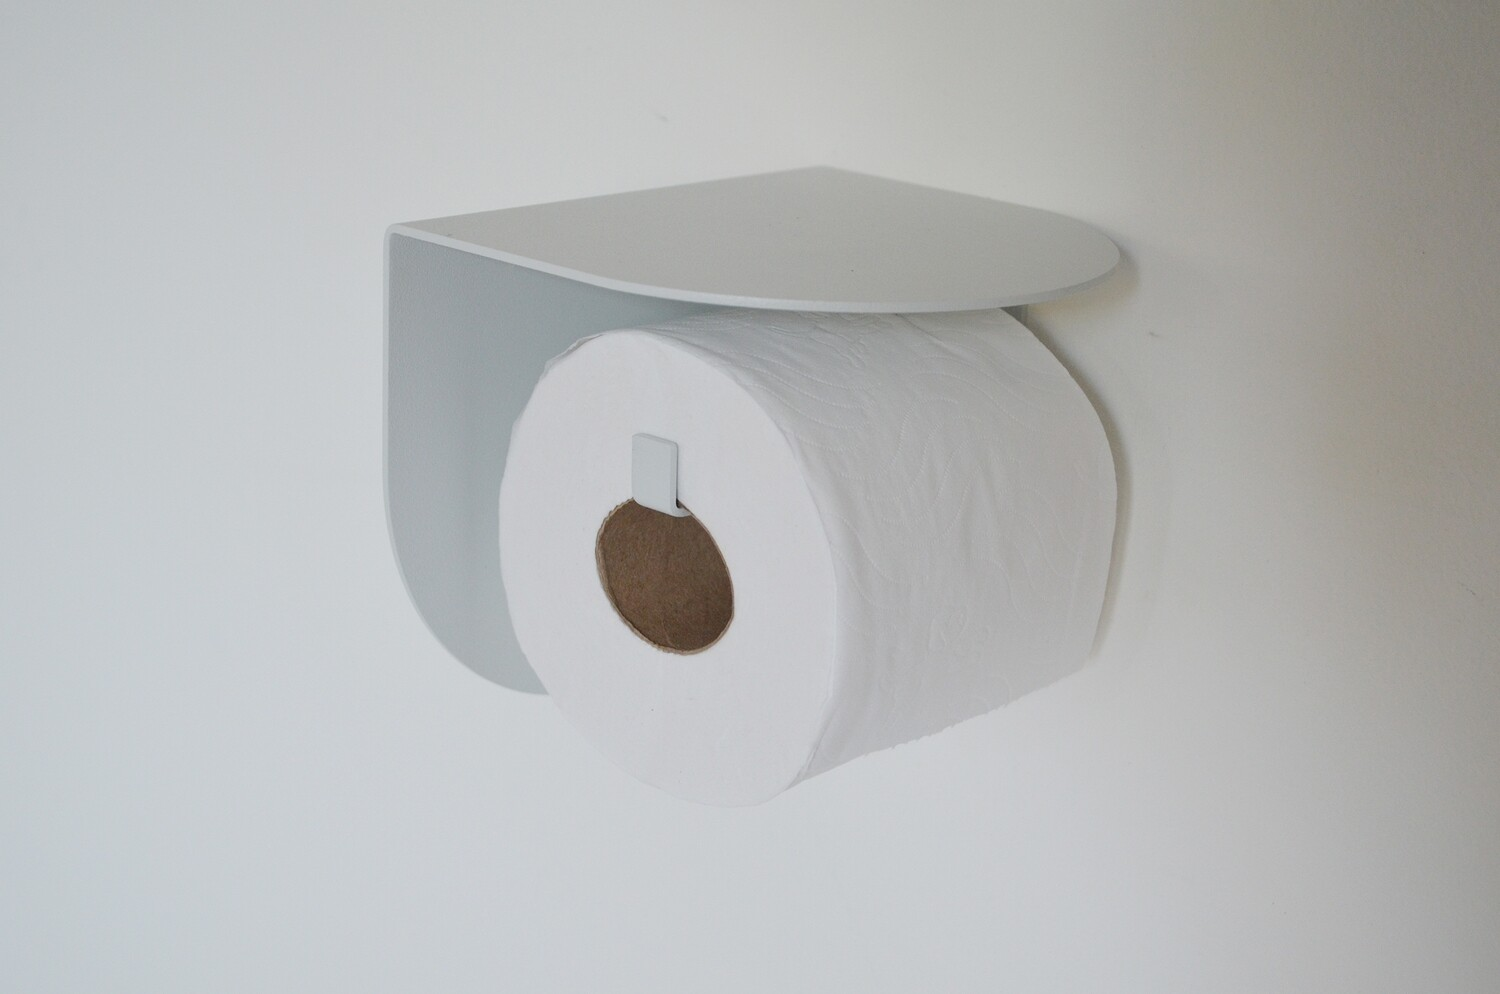 Viola toilet roll holder